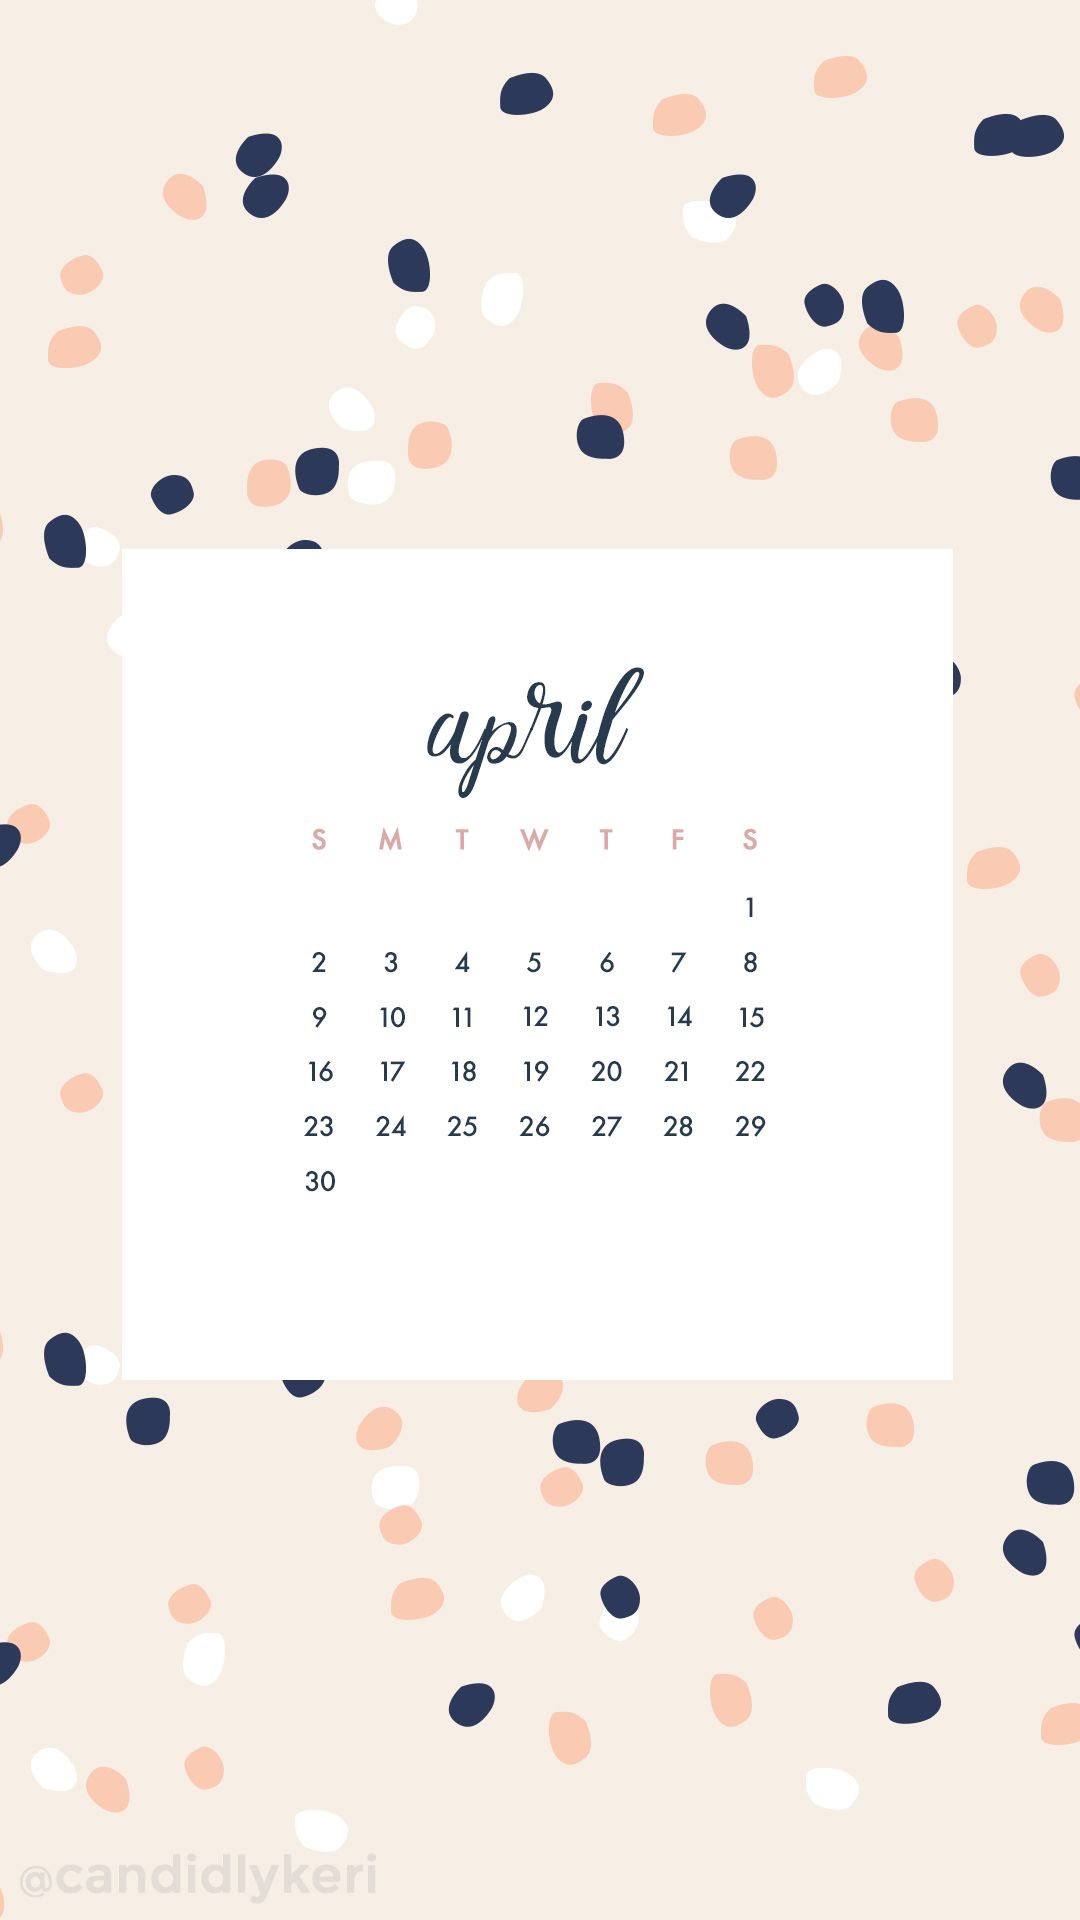 Calendar Wallpaper Iphone : April calendar wallpaper you can download for free on